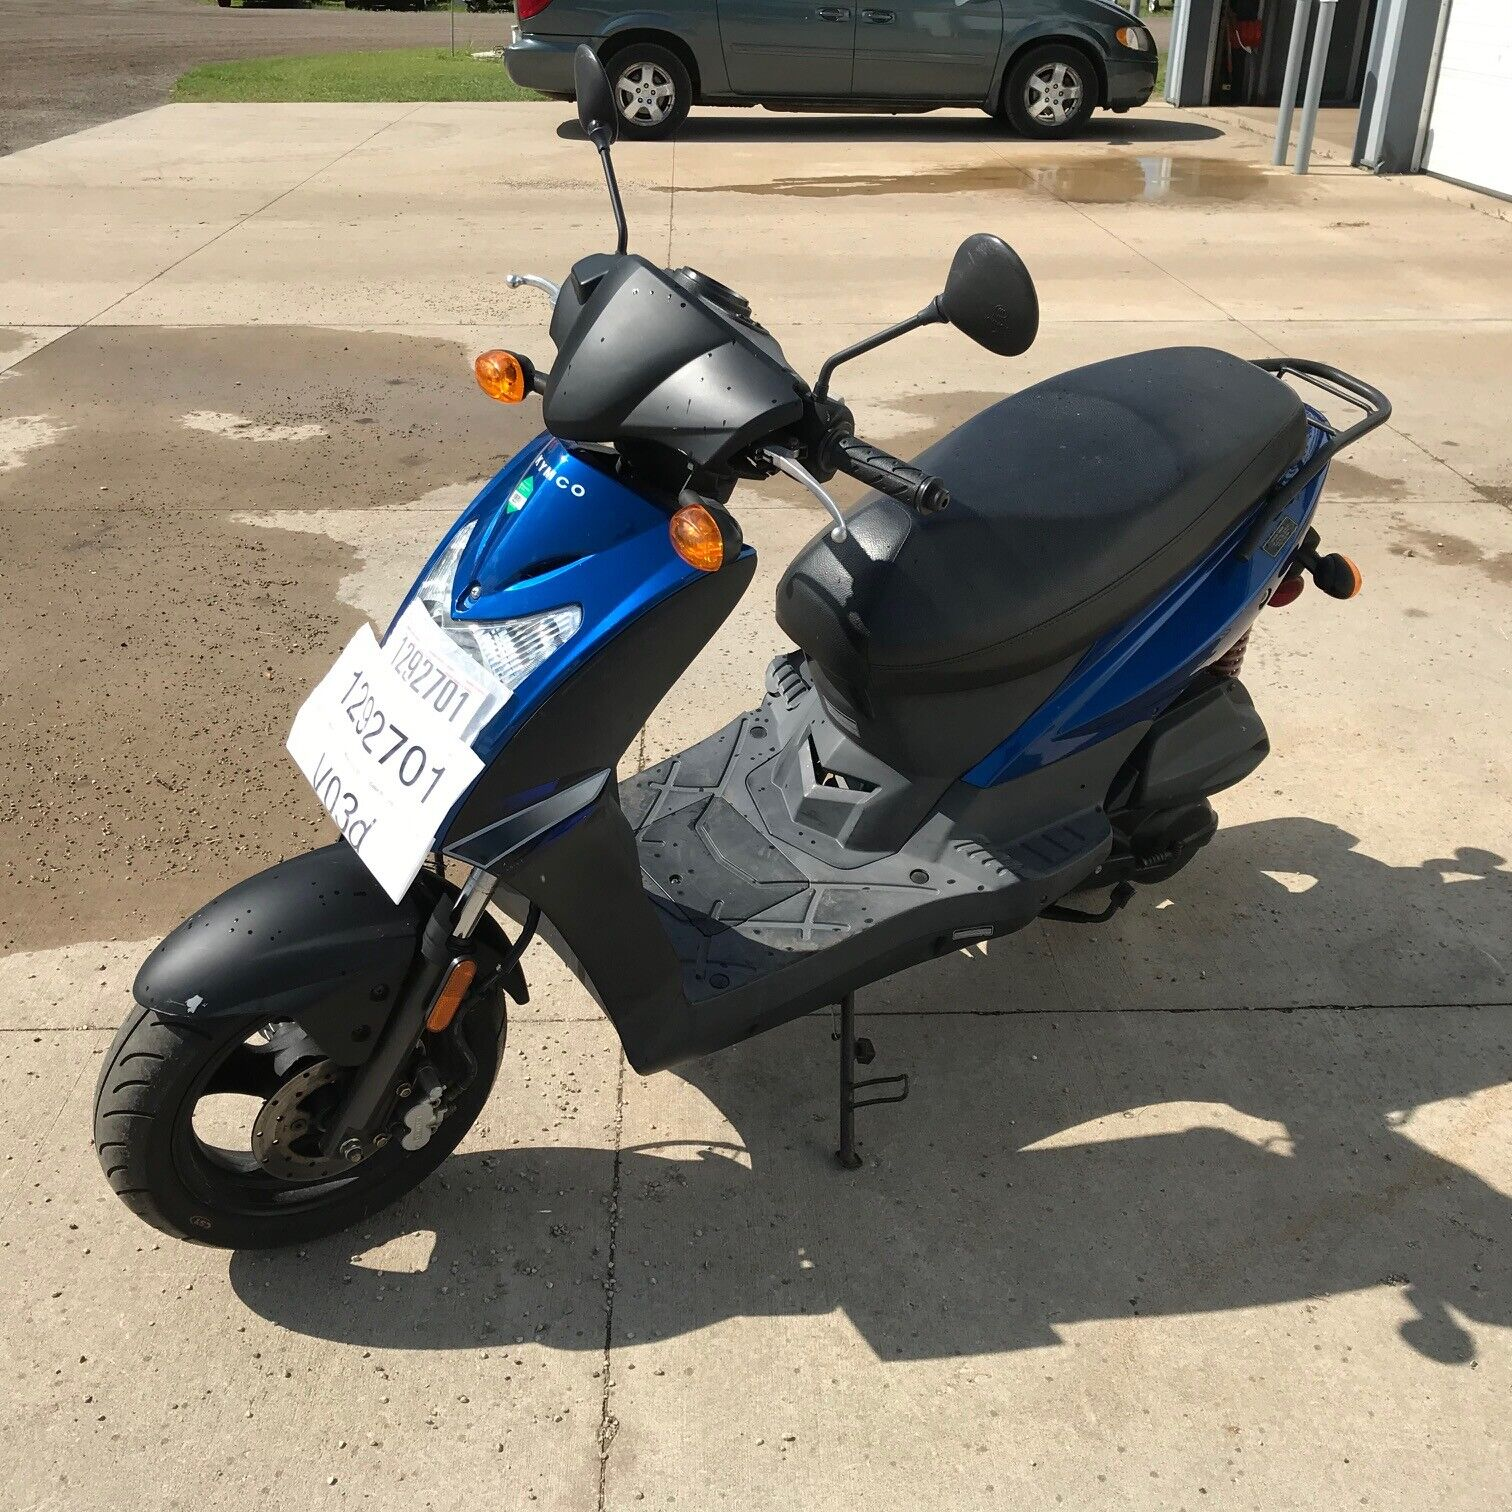 2008 Kymco  Agility 125 Moped  T1292701